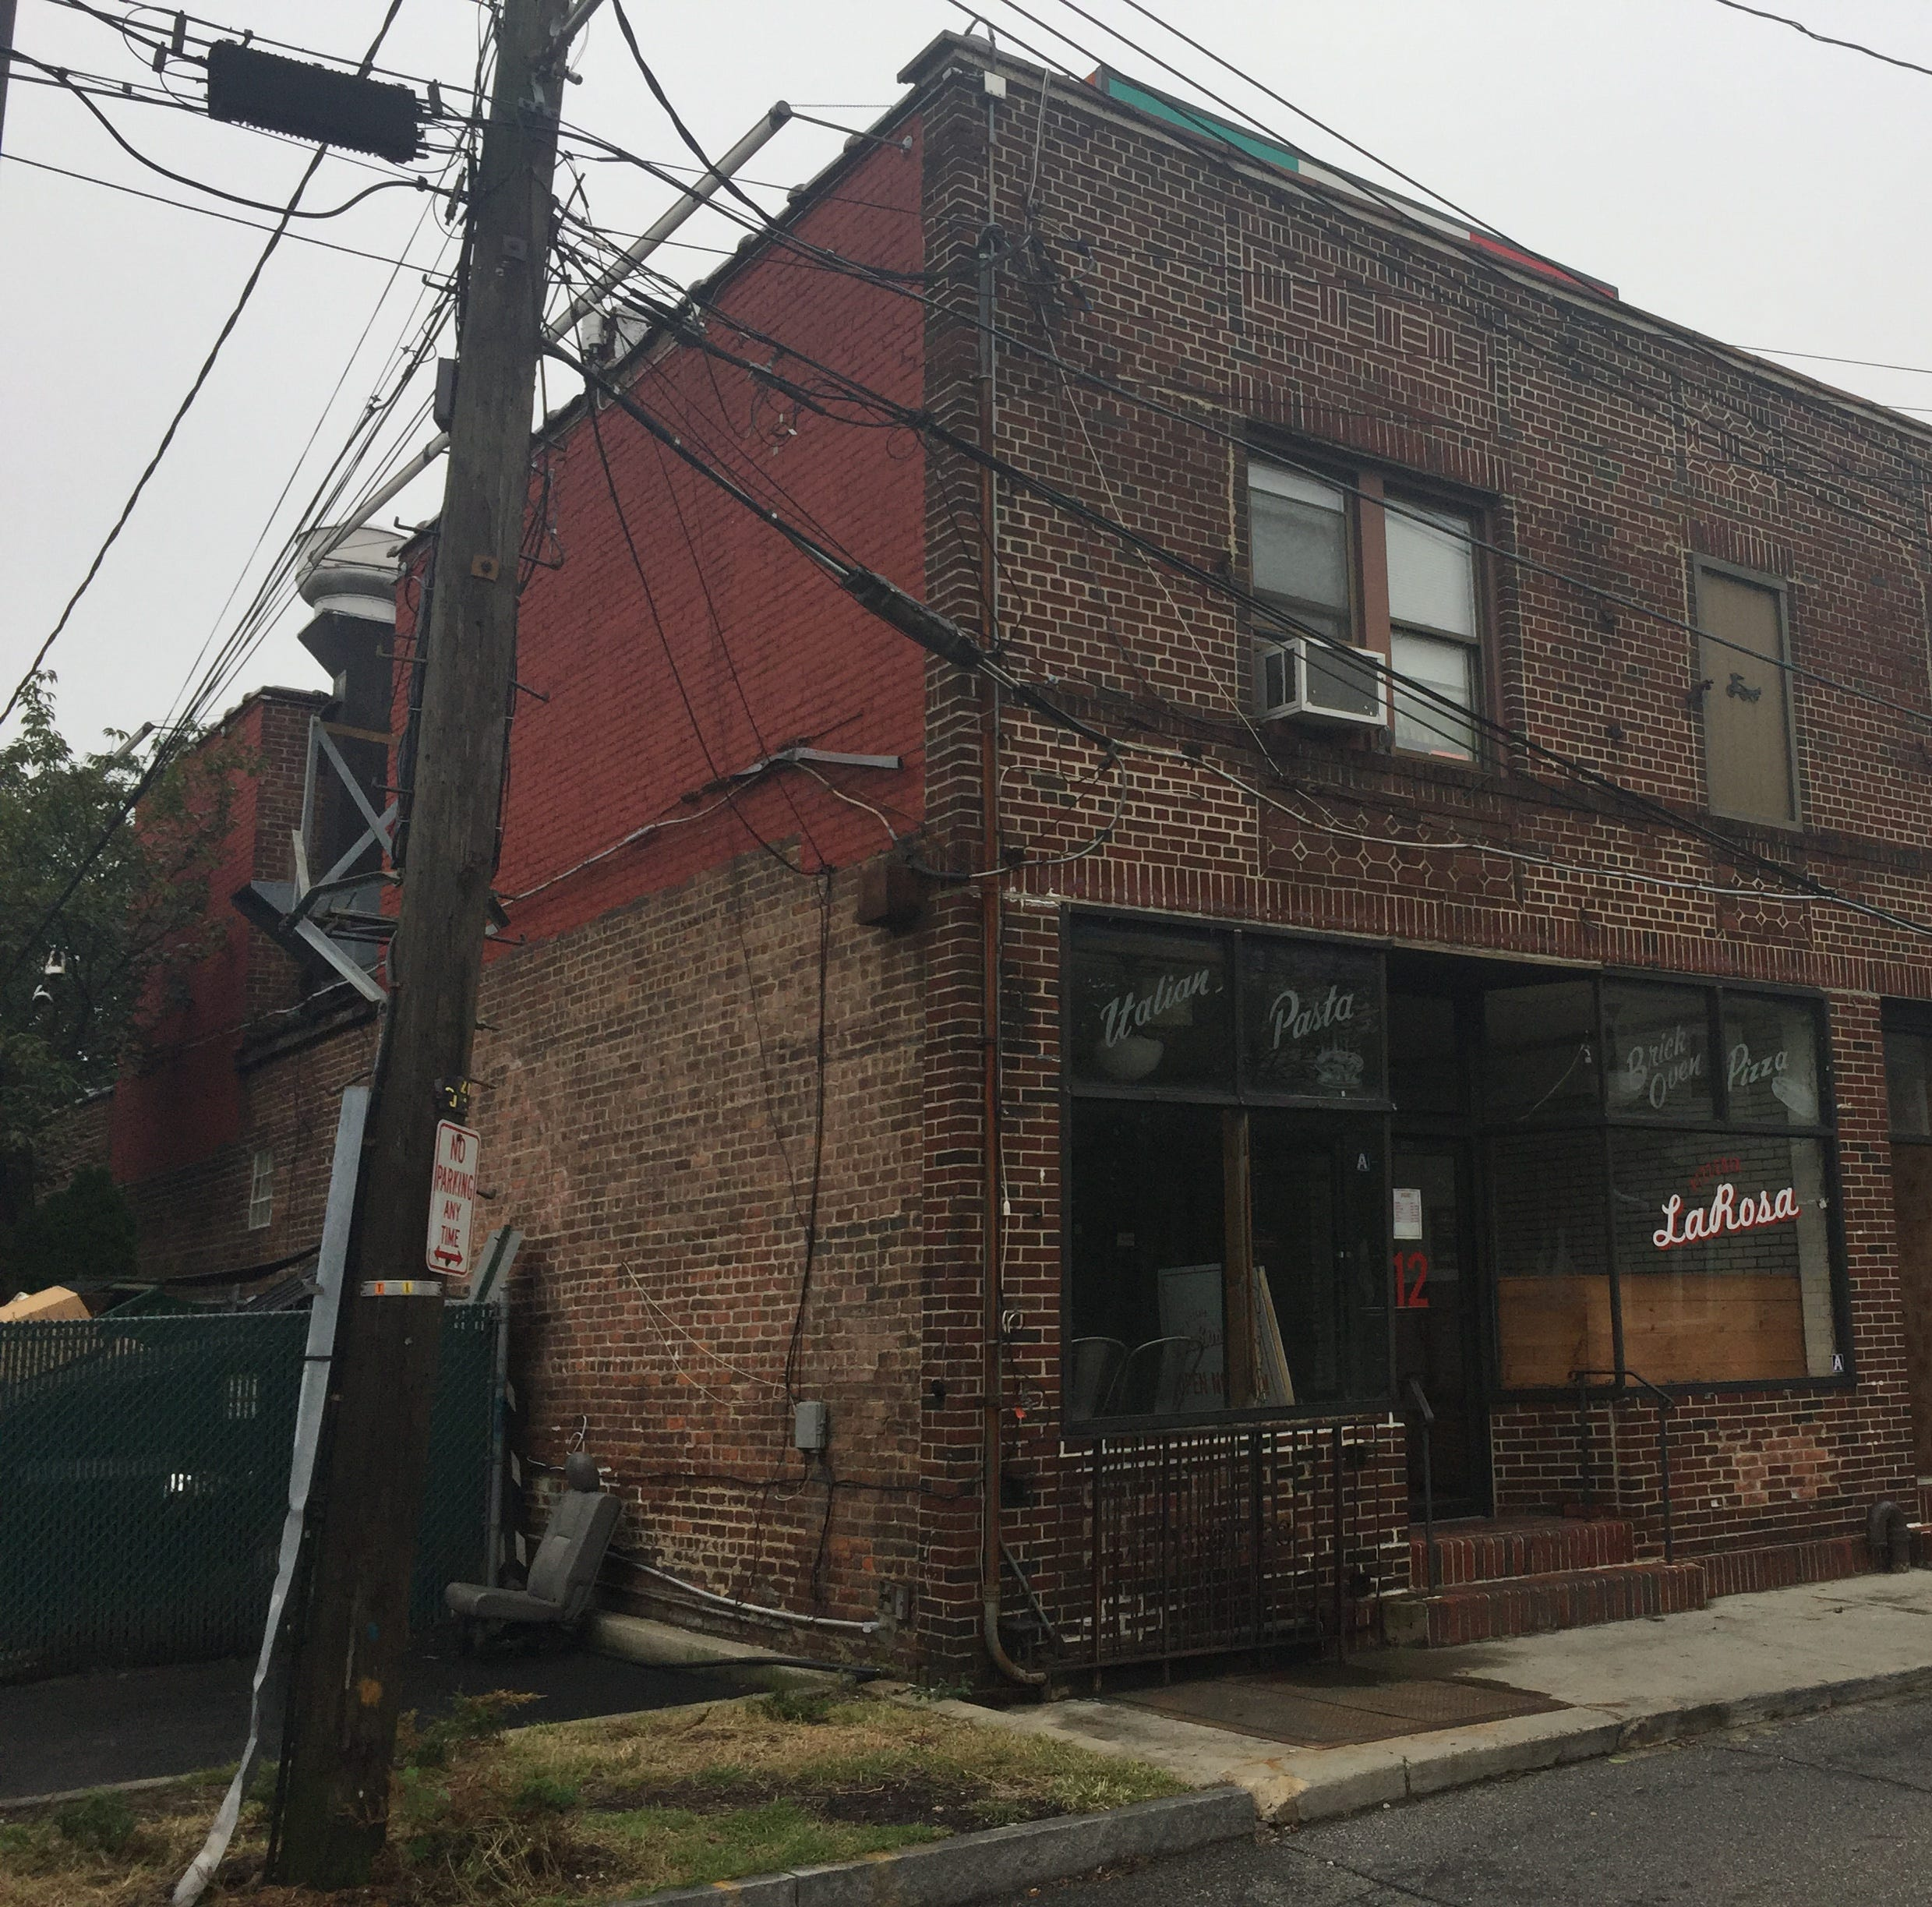 The property at 12 Russell Ave. was sold in late August. It's part of a single contract that included 13 Allard Ave. and sold for $1.45 million | Nicholas Tantillo | Sept. 12, 2018